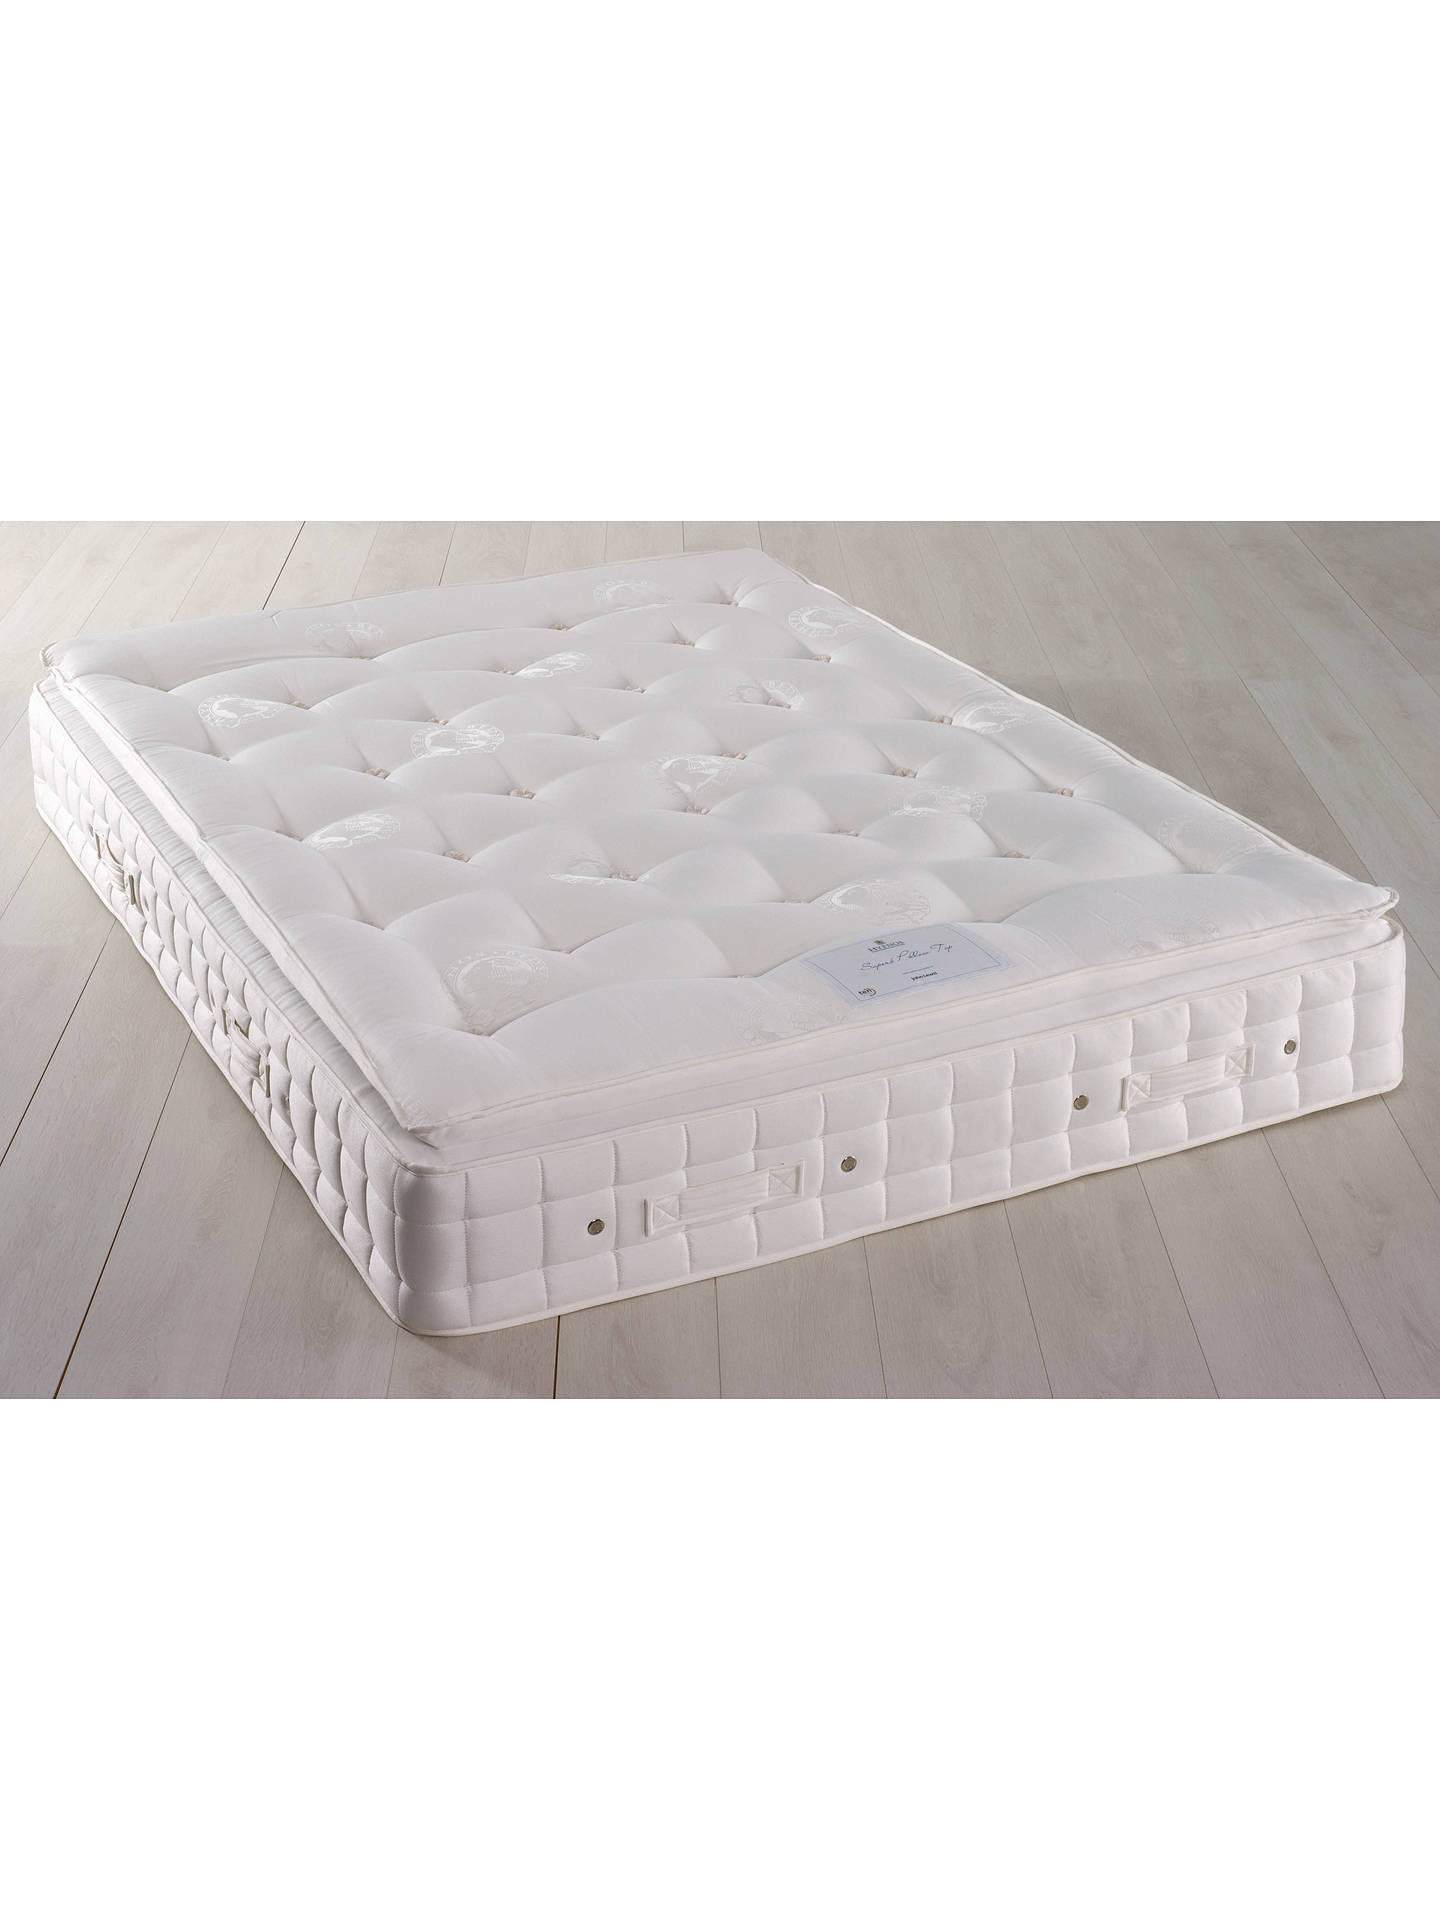 hypnos superb pillow top pocket spring mattress firm double at john lewis partners. Black Bedroom Furniture Sets. Home Design Ideas